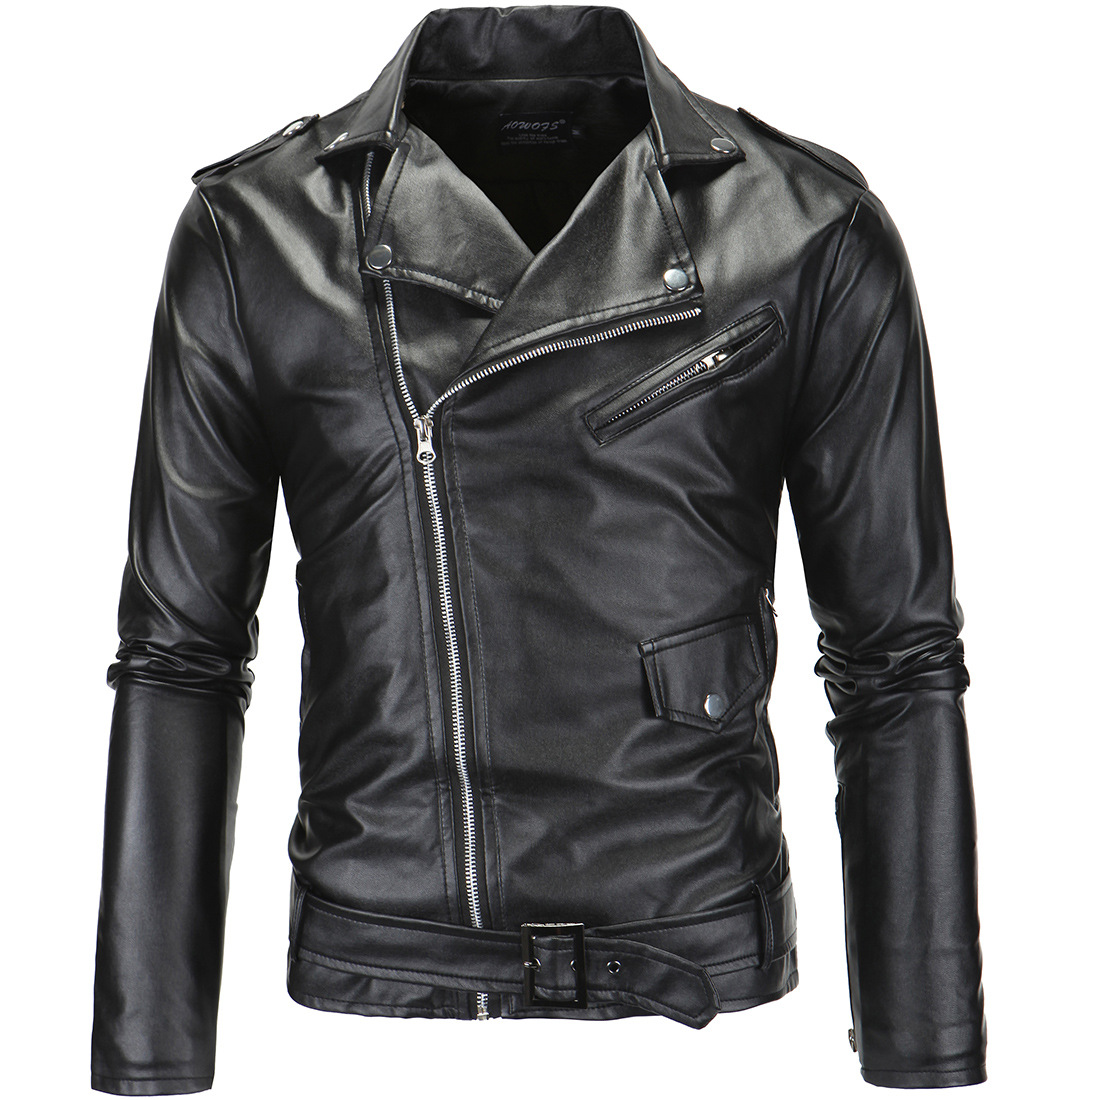 2018 New Mens Leather Jackets Men Turn-down Collar Black Coats Male Motorcycle Leather Jacket Men Casual Slim Brand Clothing